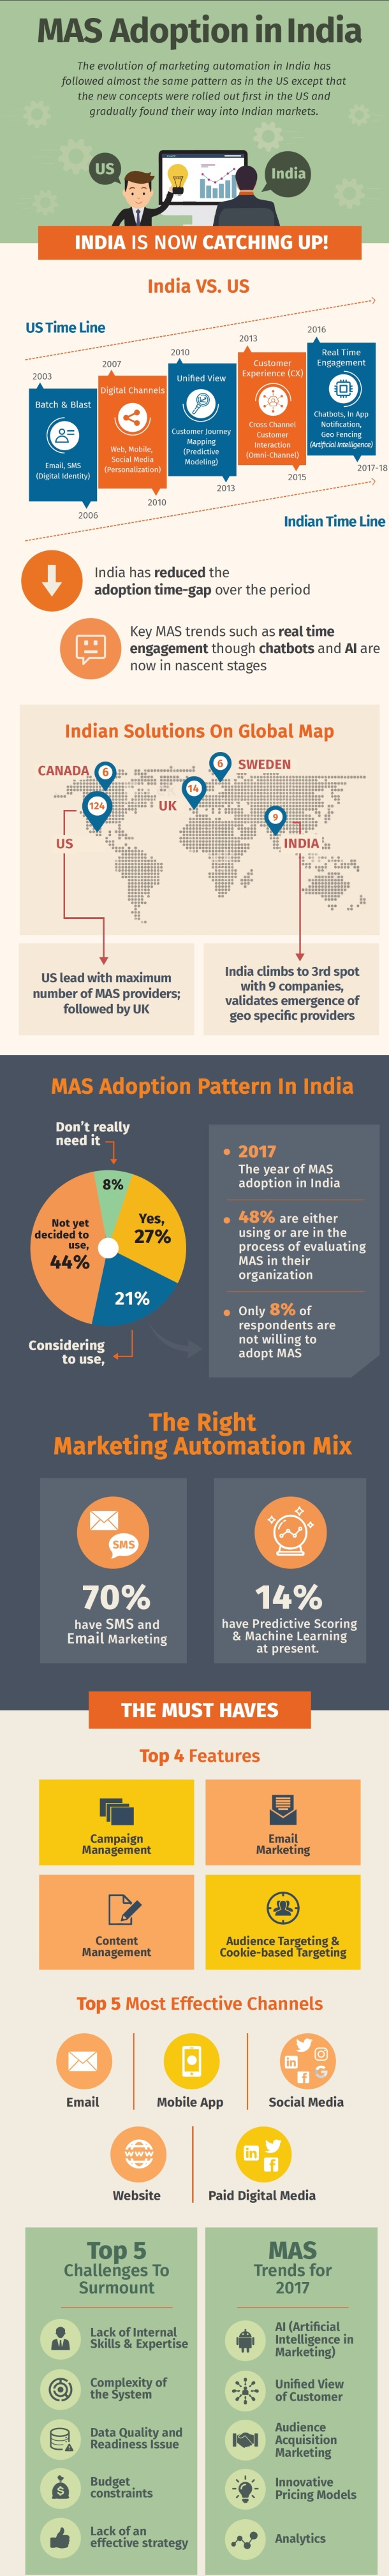 Marketing automation adoption in India Netcore Research NXT survey 2017